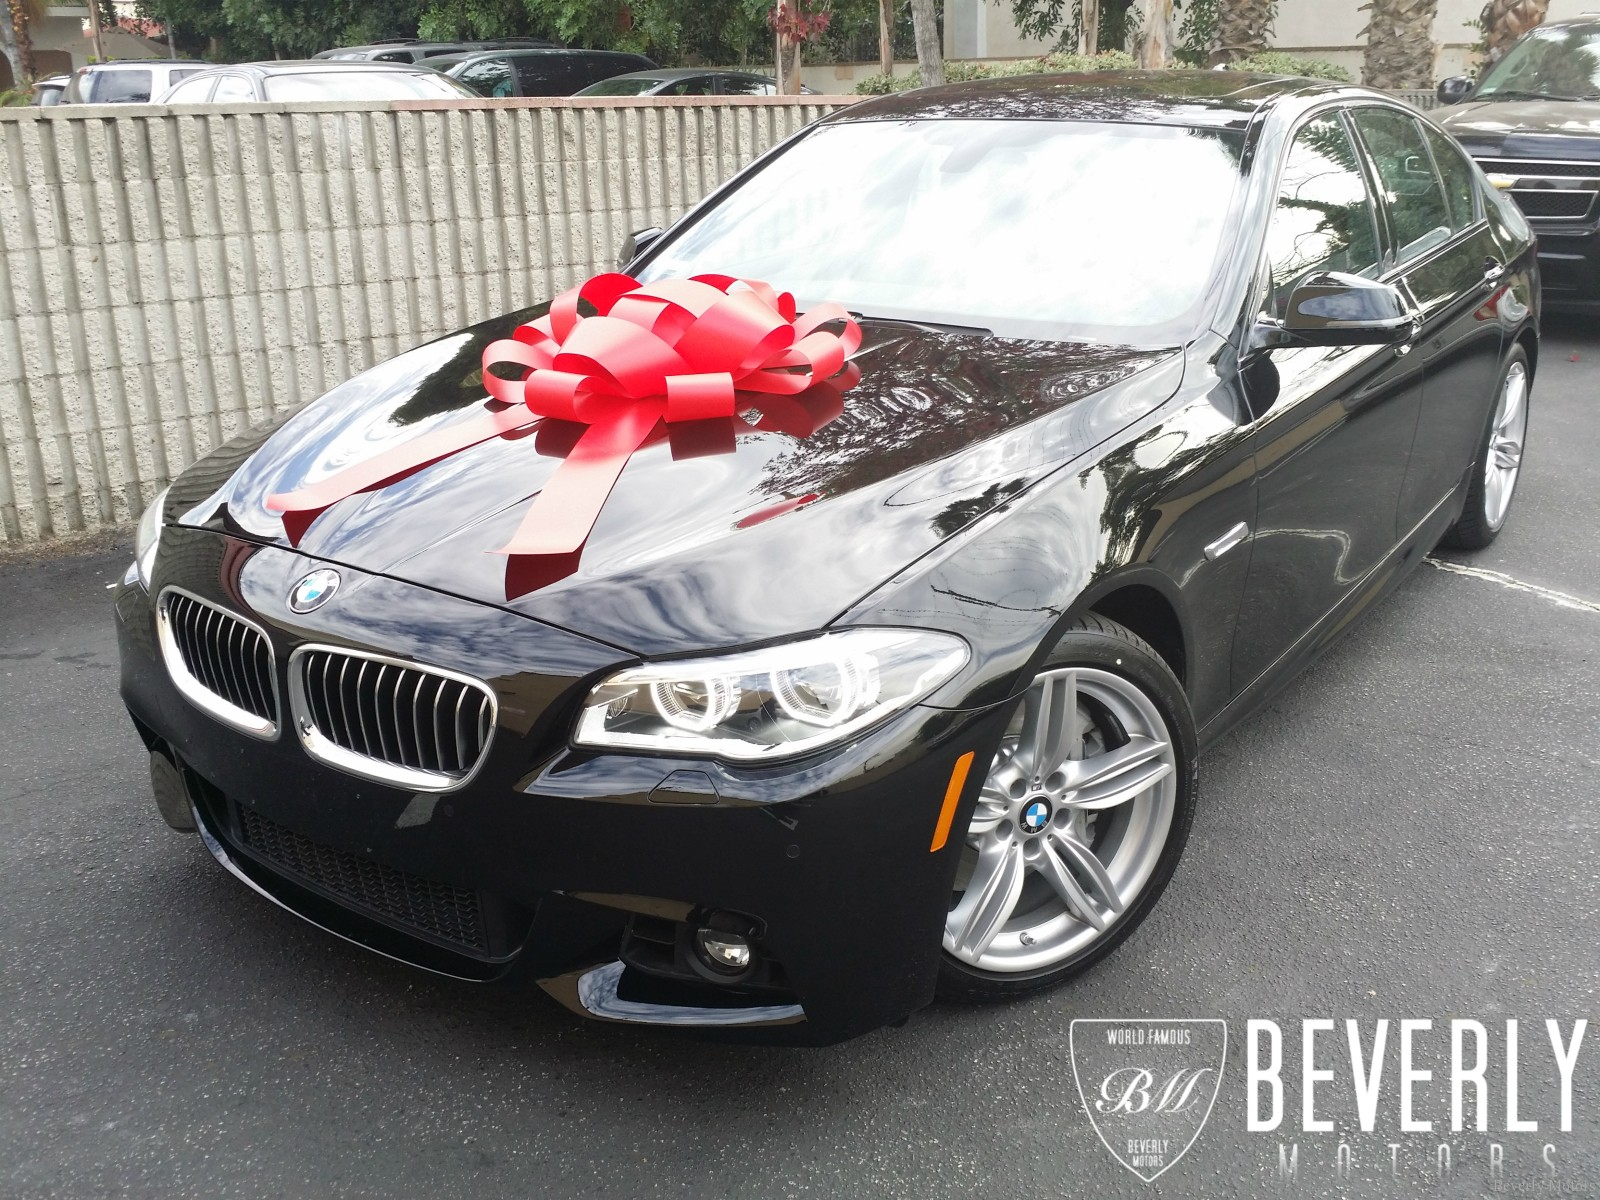 Beverly Motors Inc Glendale Auto Leasing And Sales New Car - 2014 bmw 535i m sport